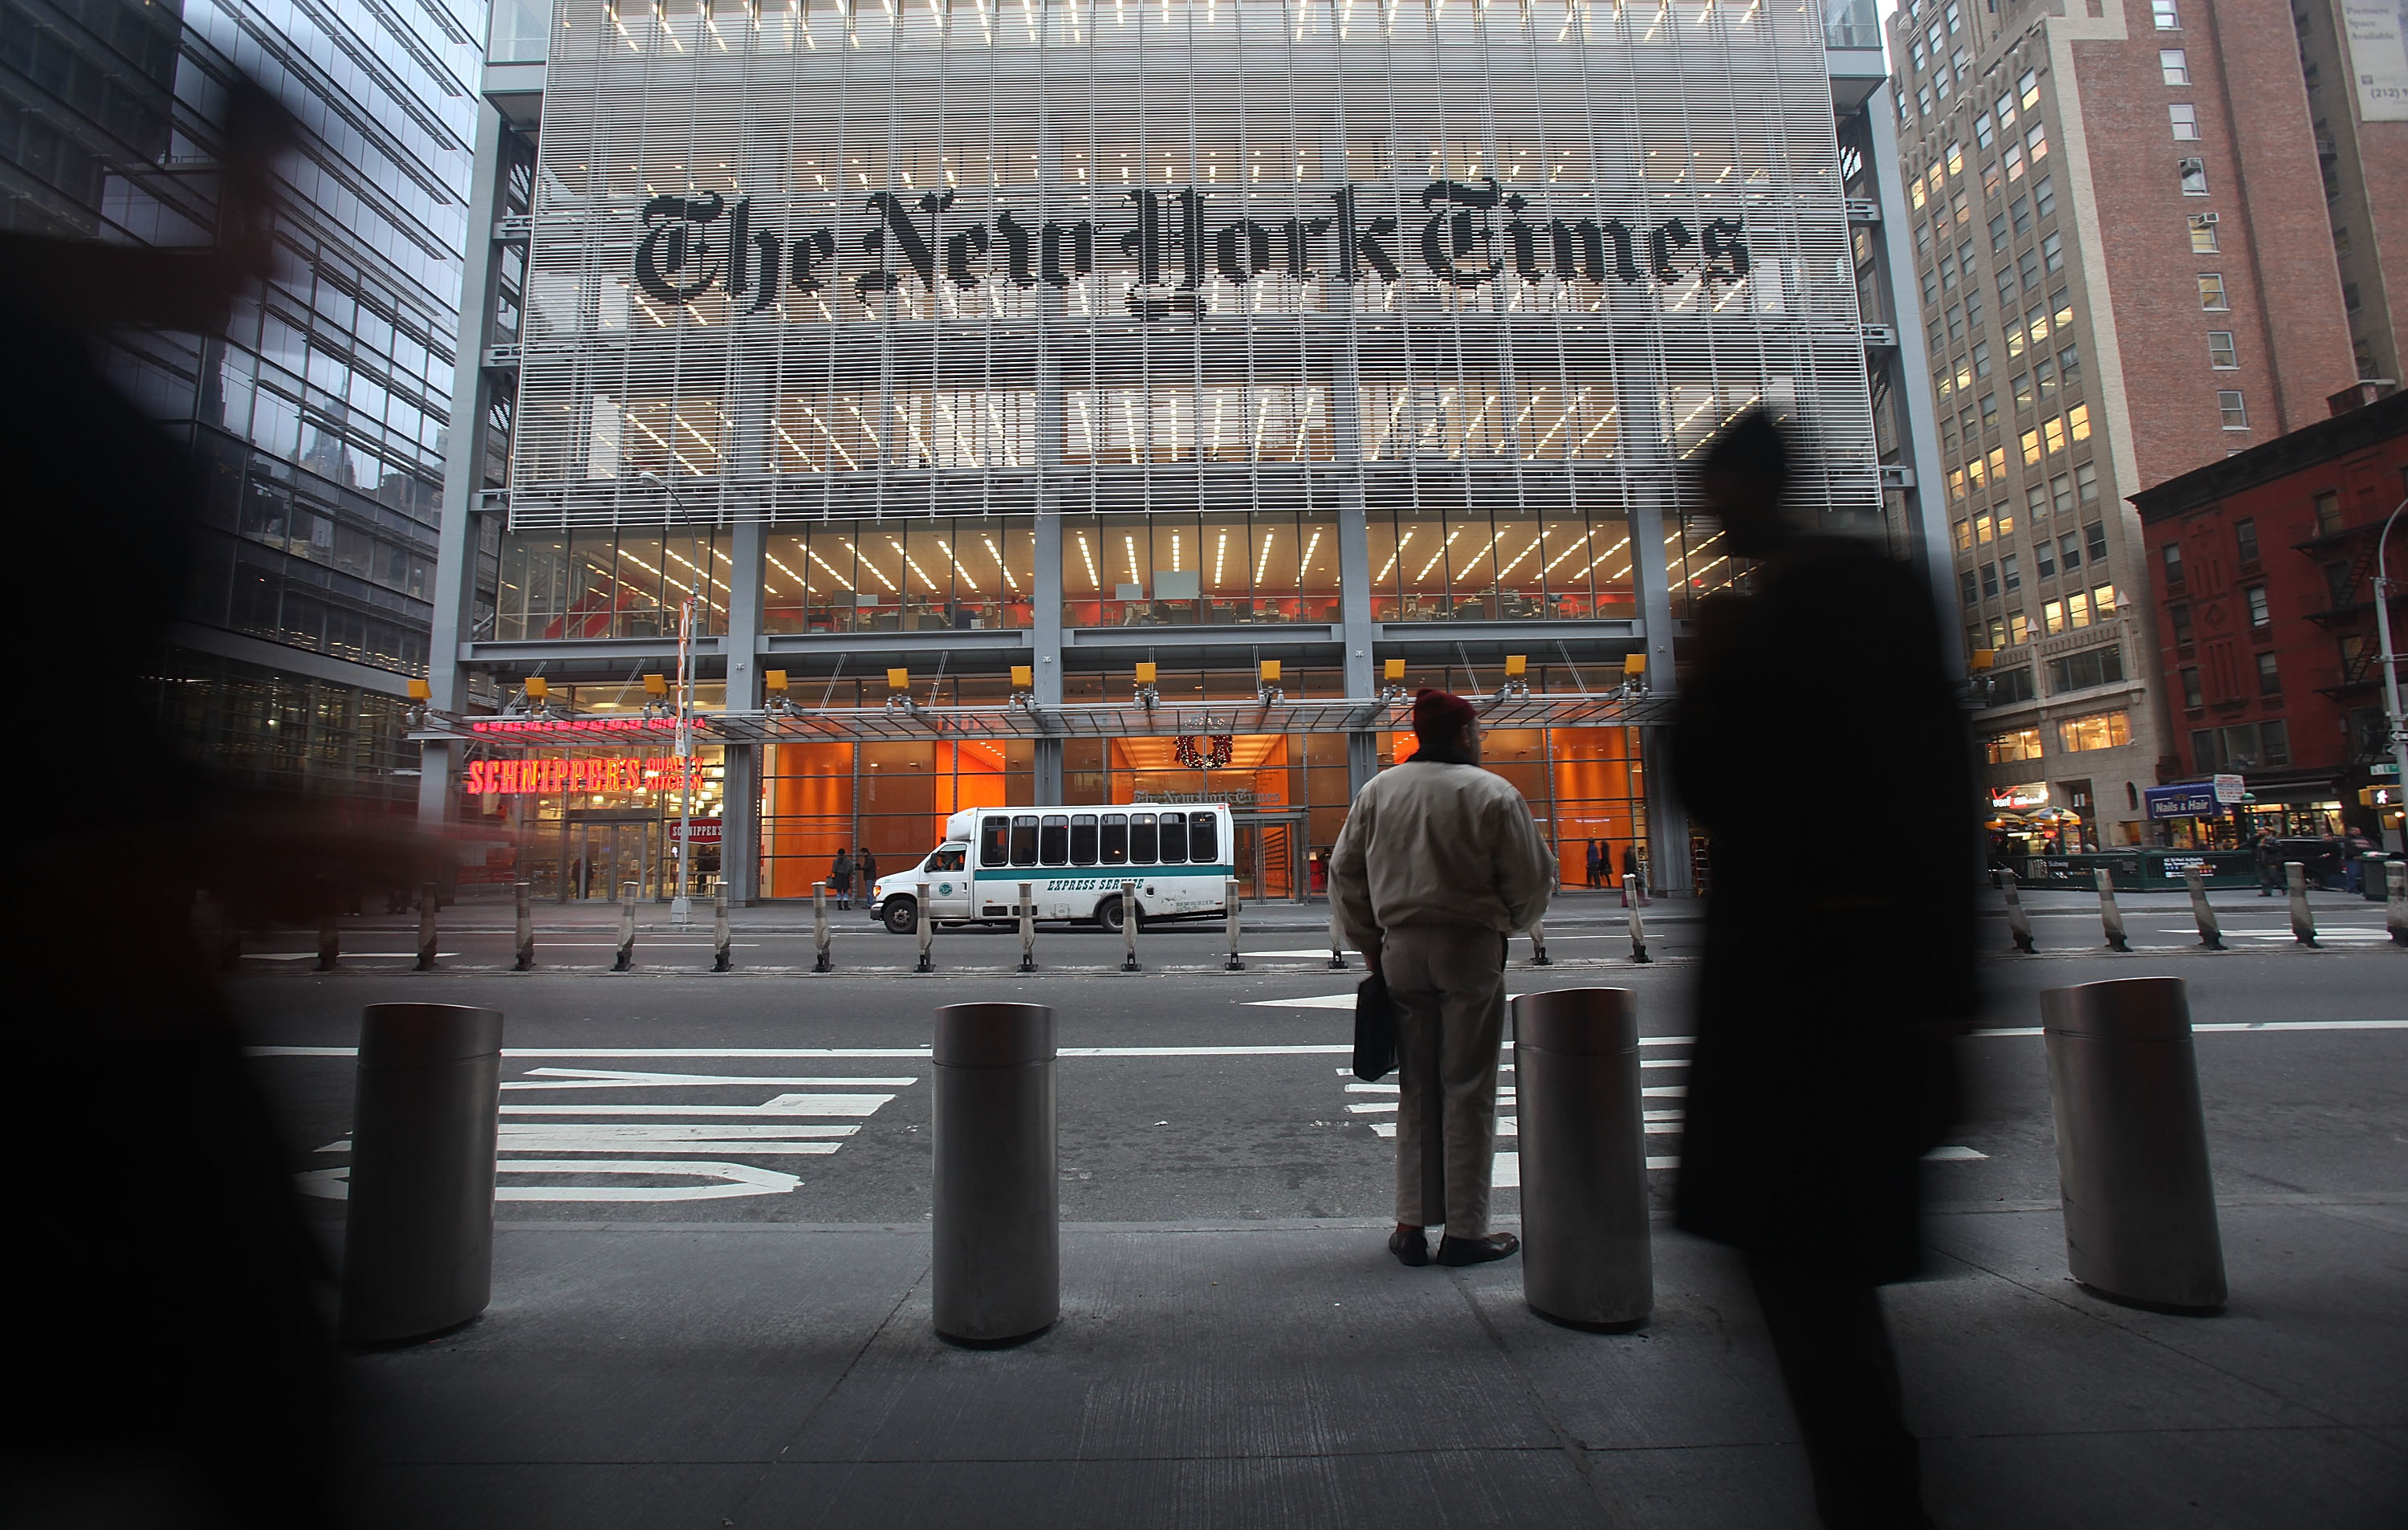 The New York Times' masthead is displayed in front of the midtown headquarters in New York City. (Photo: Mario Tama/Getty Images)